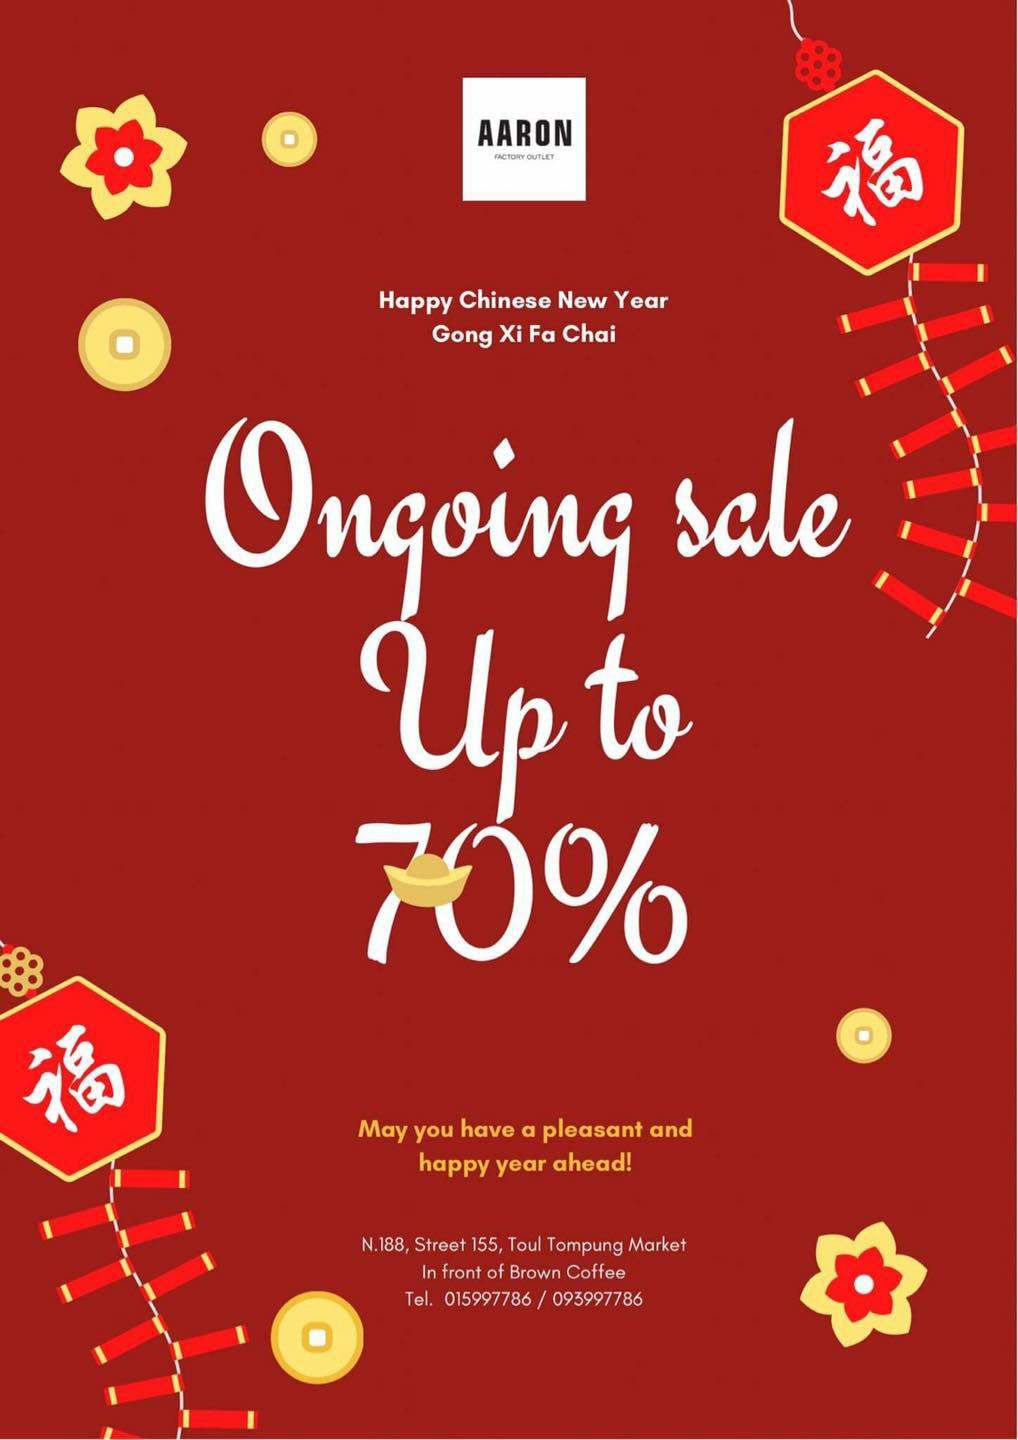 Discount 10% up to 70%